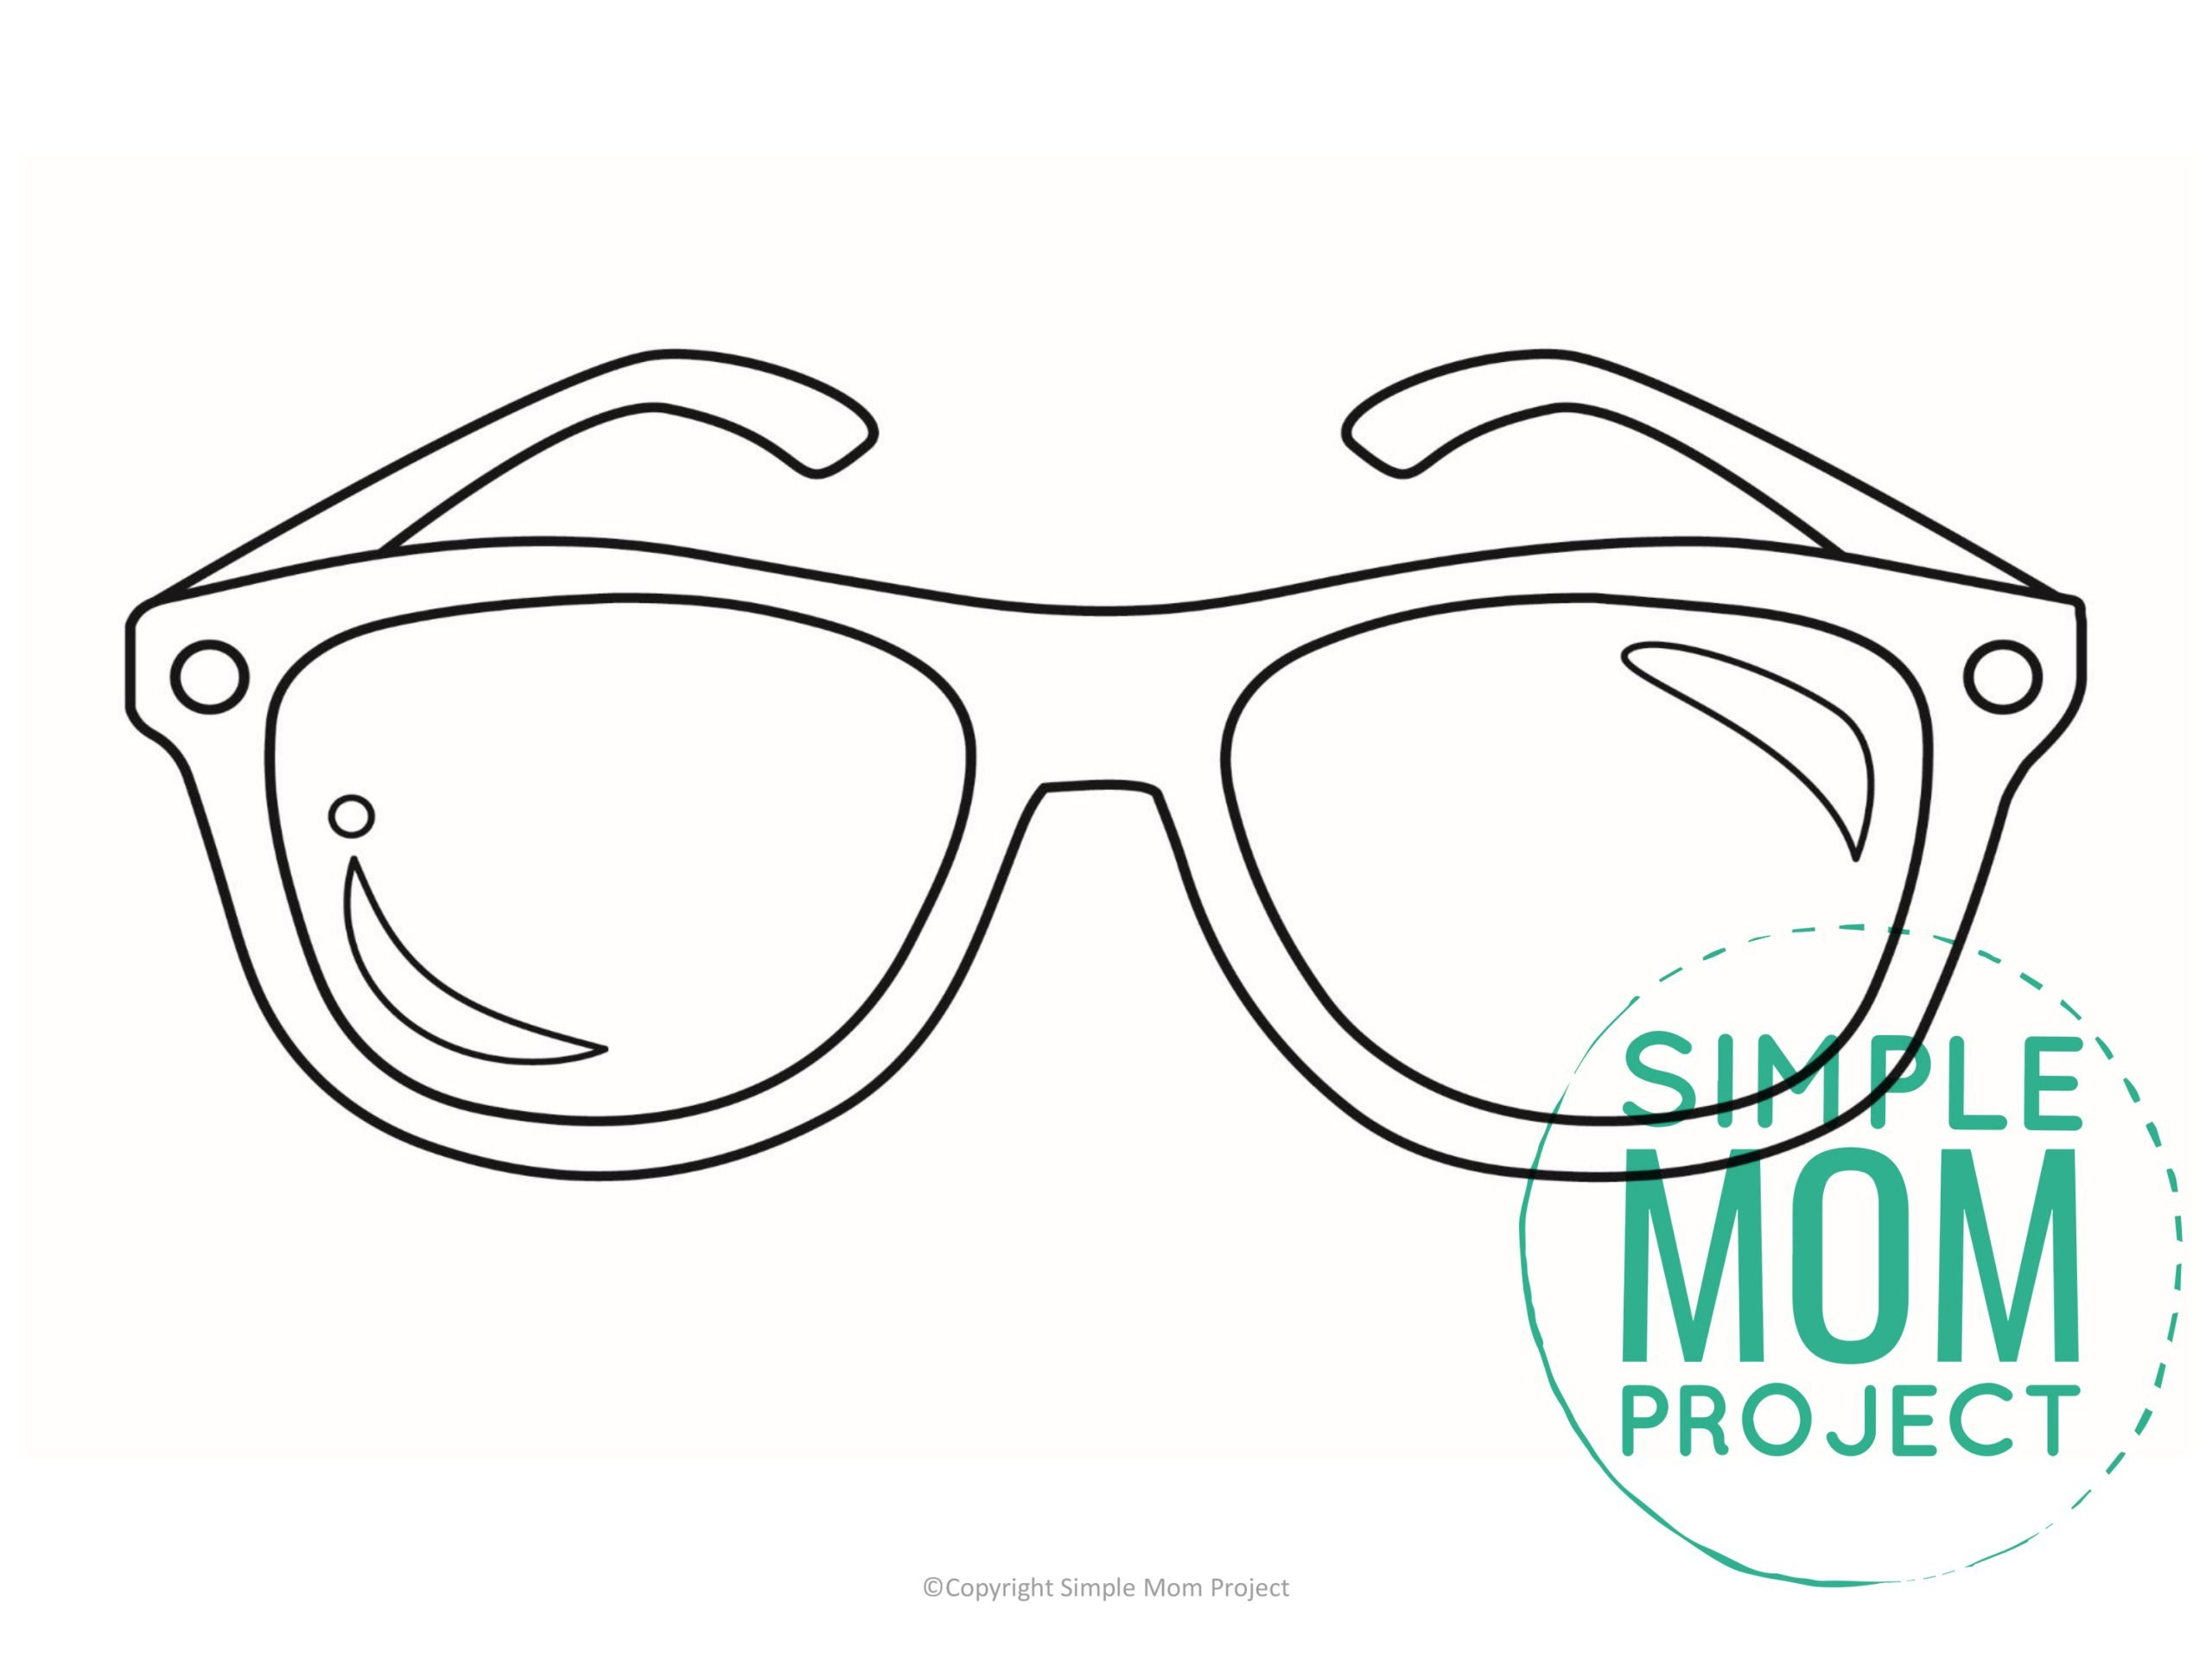 Free printable sunglasses template for kids, preschoolers, and toddlers